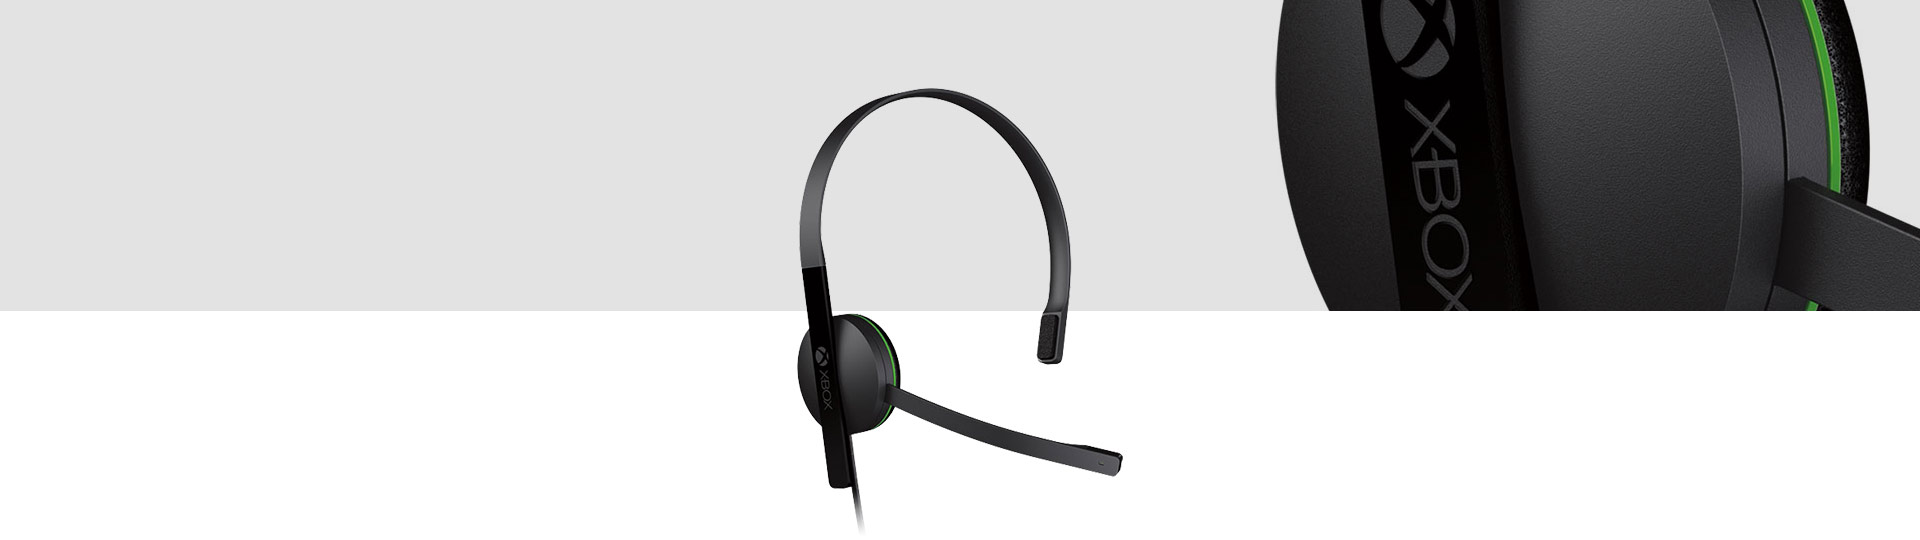 Xbox One csevegő headset